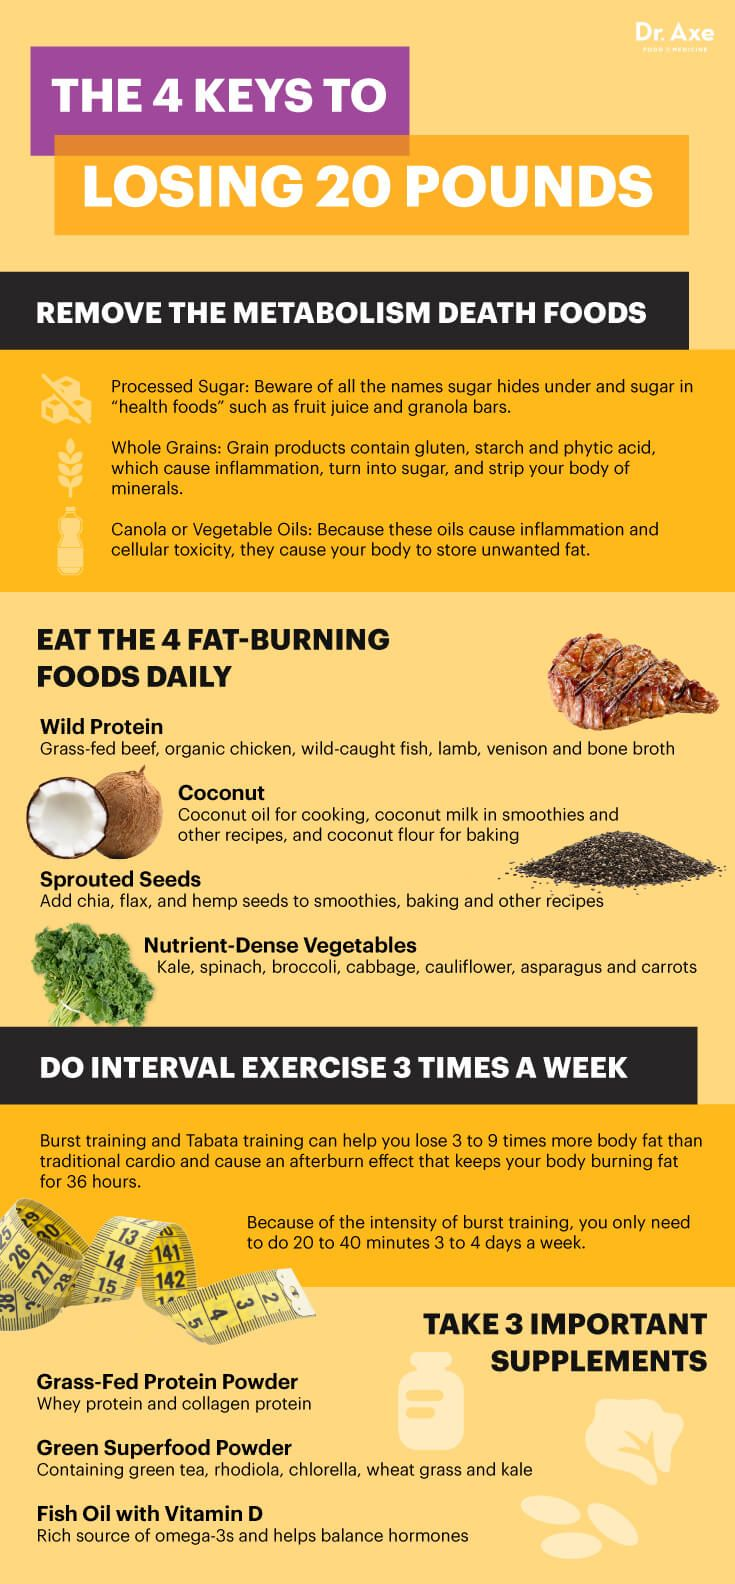 best diet plan to lose 20 pounds in 1 month